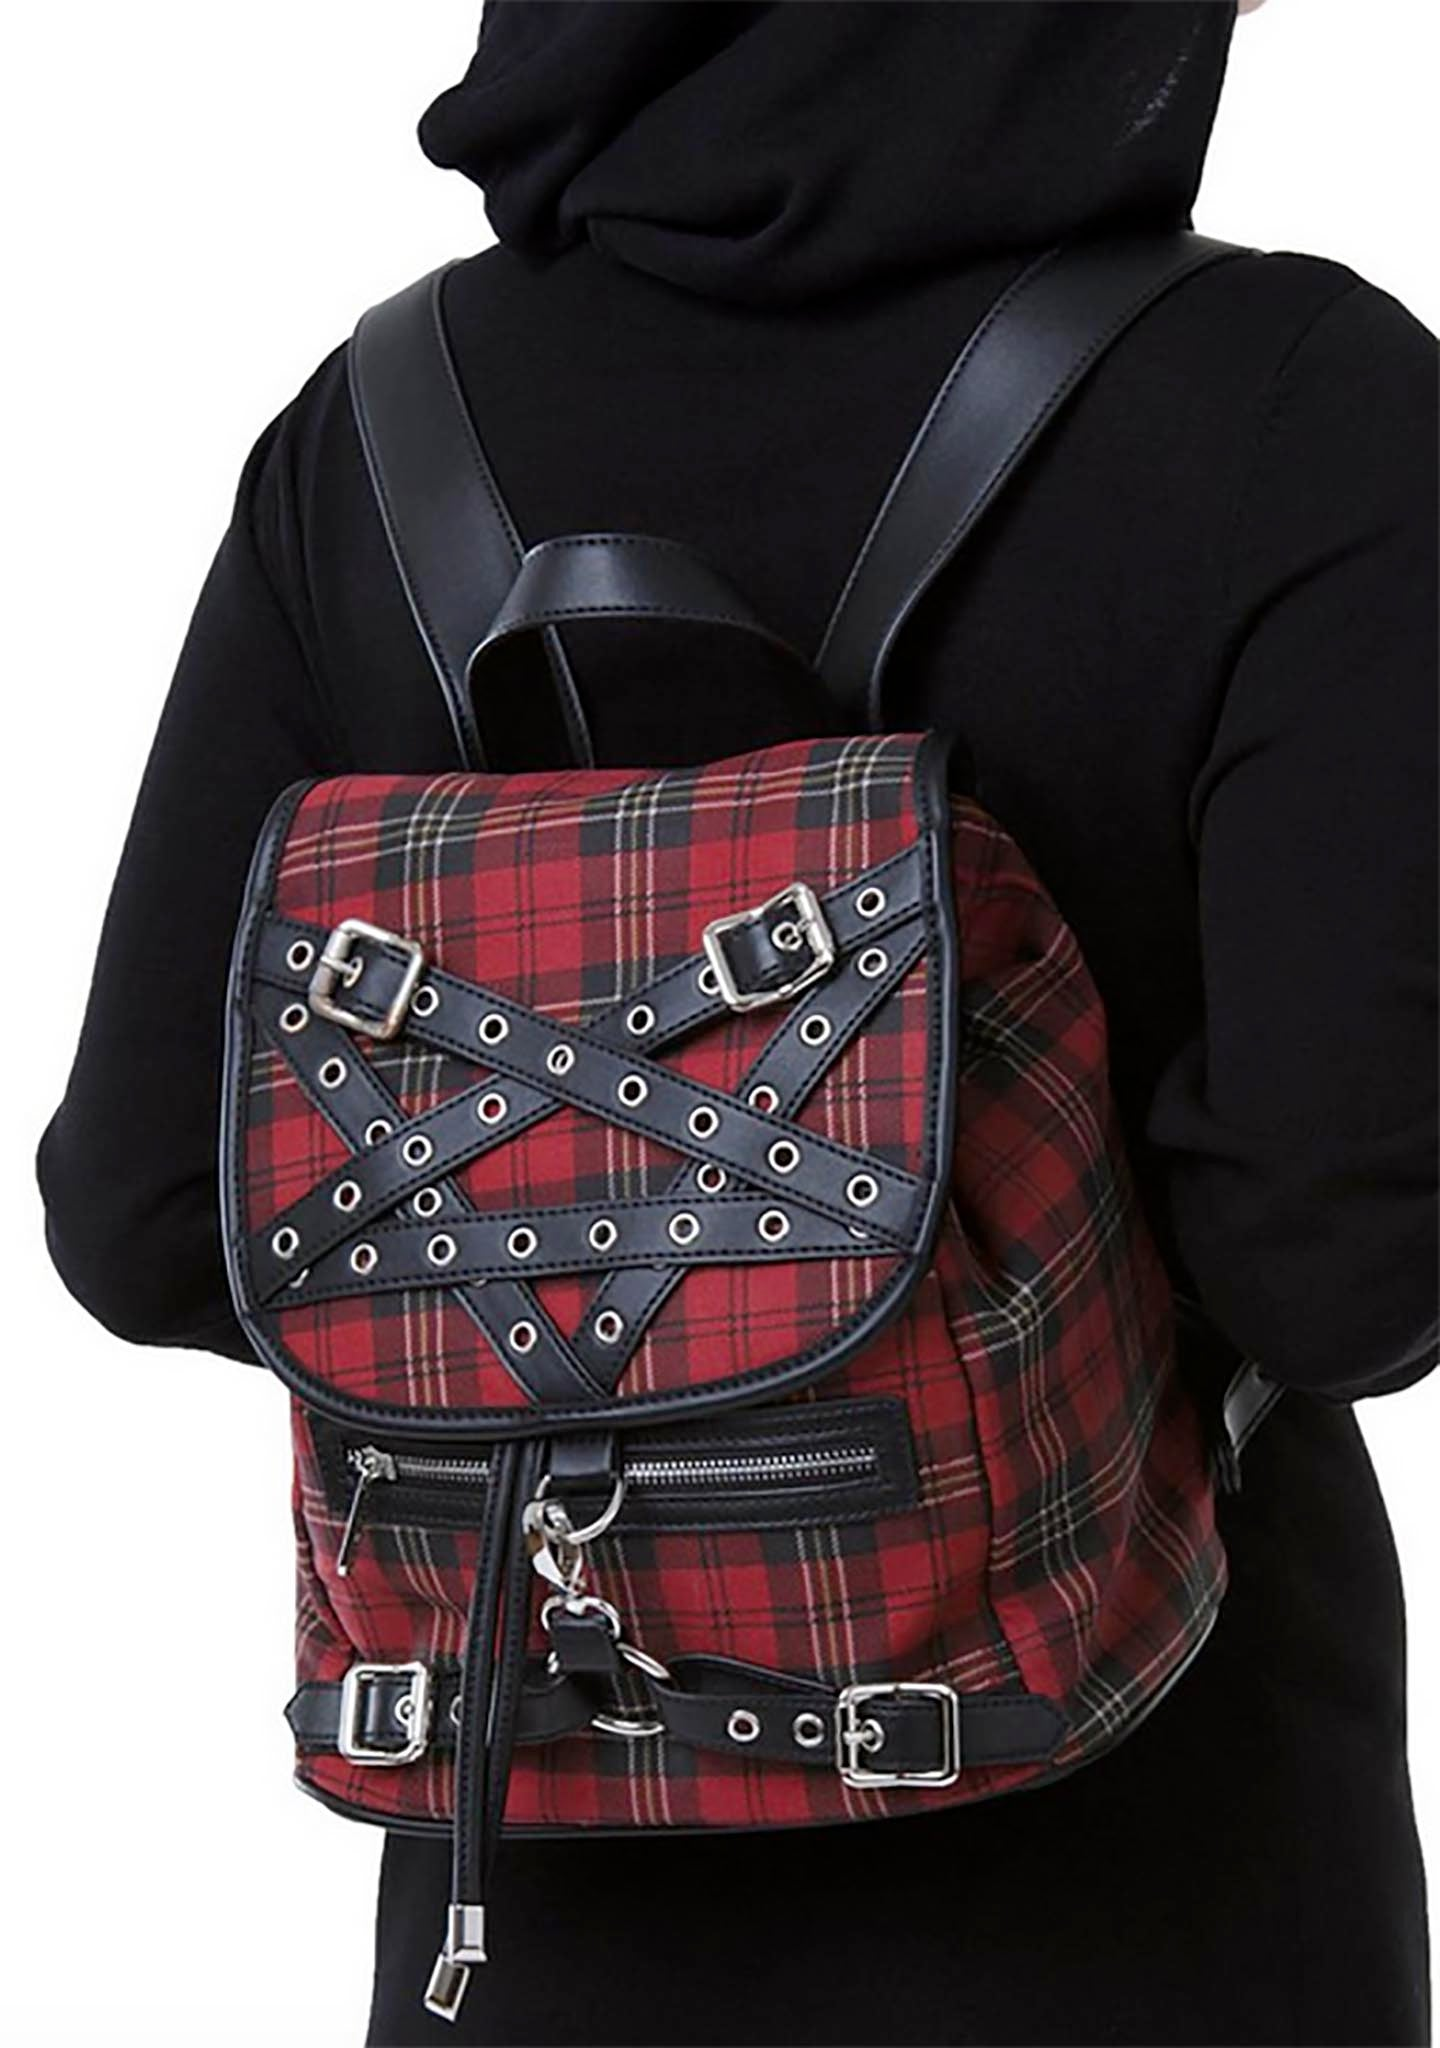 Menace Backpack